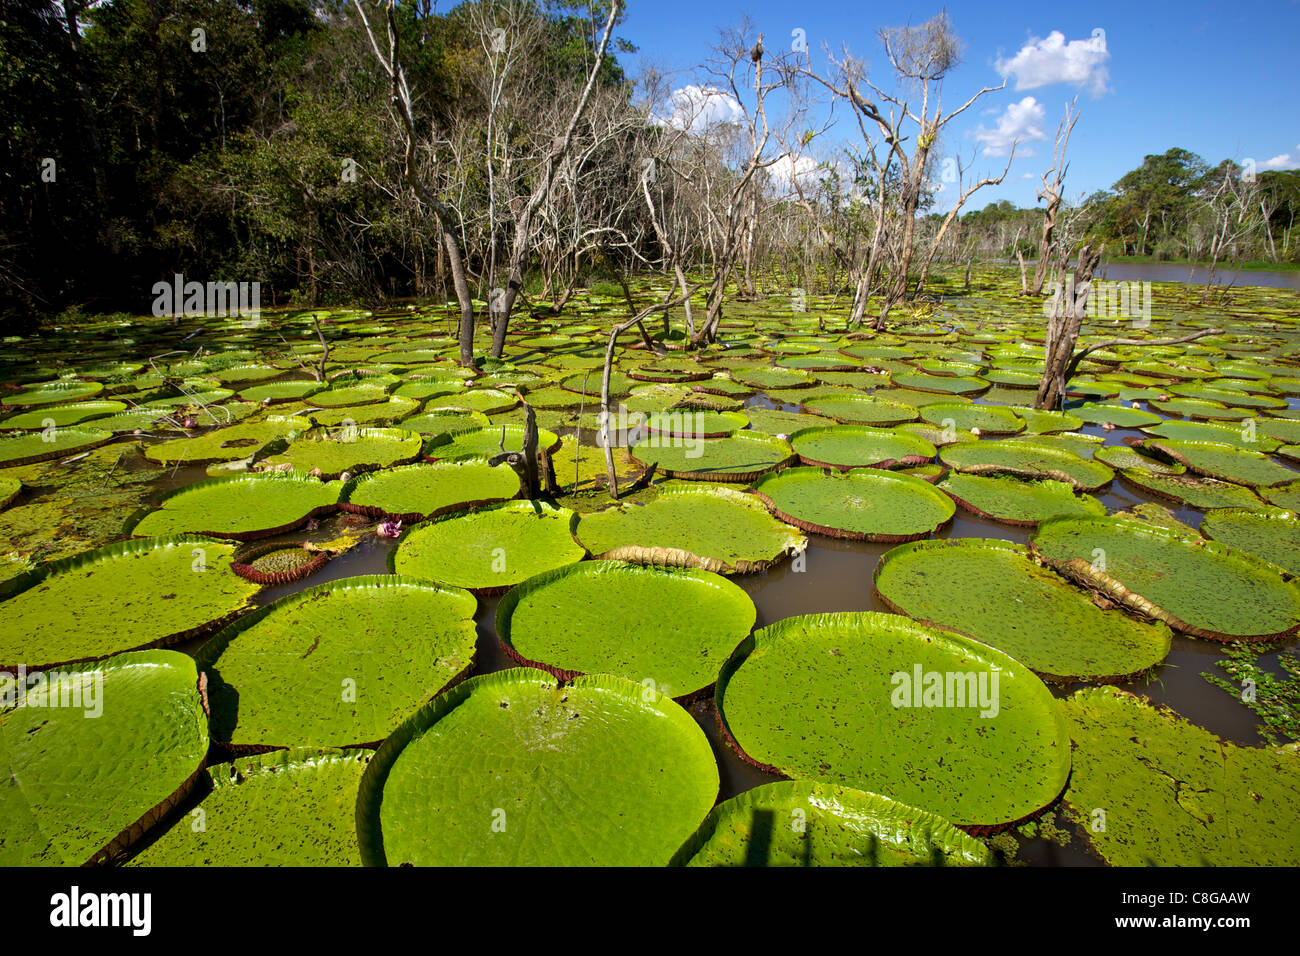 Giant lily leaves and flower in the Amazonian forest, Manaus, Brazil - Stock Image